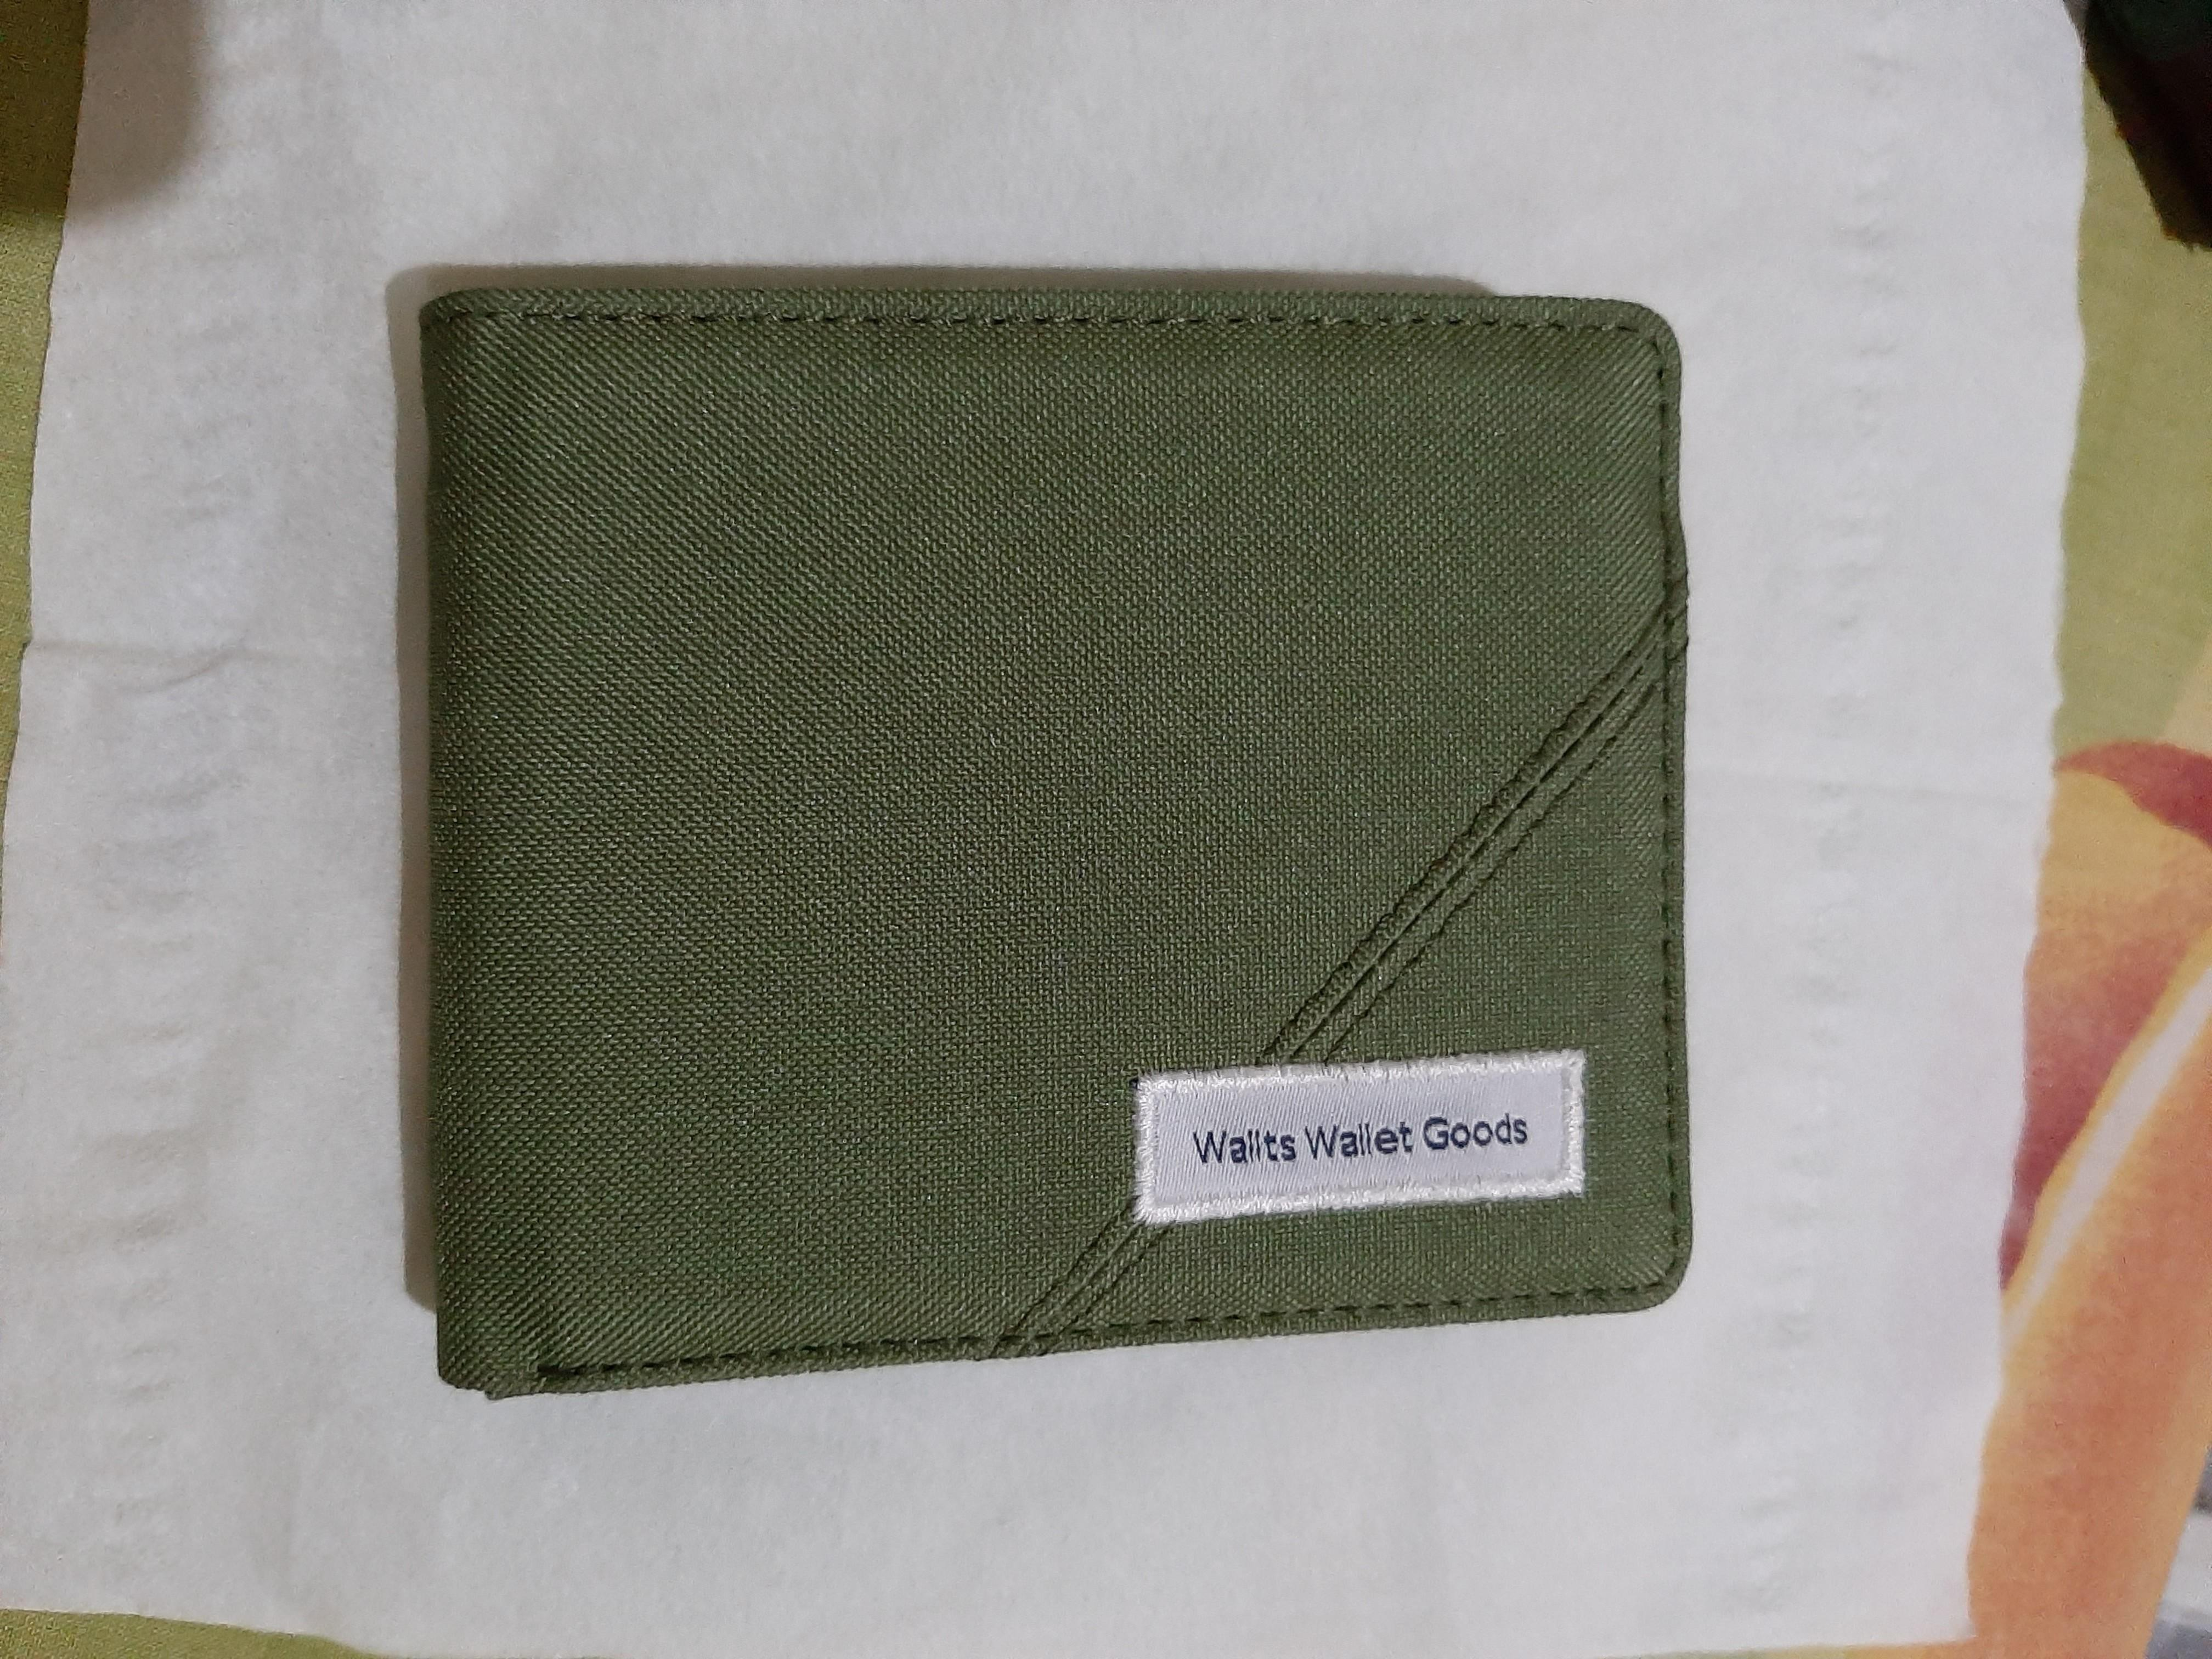 Wallts wallet goods dompet pria warna army